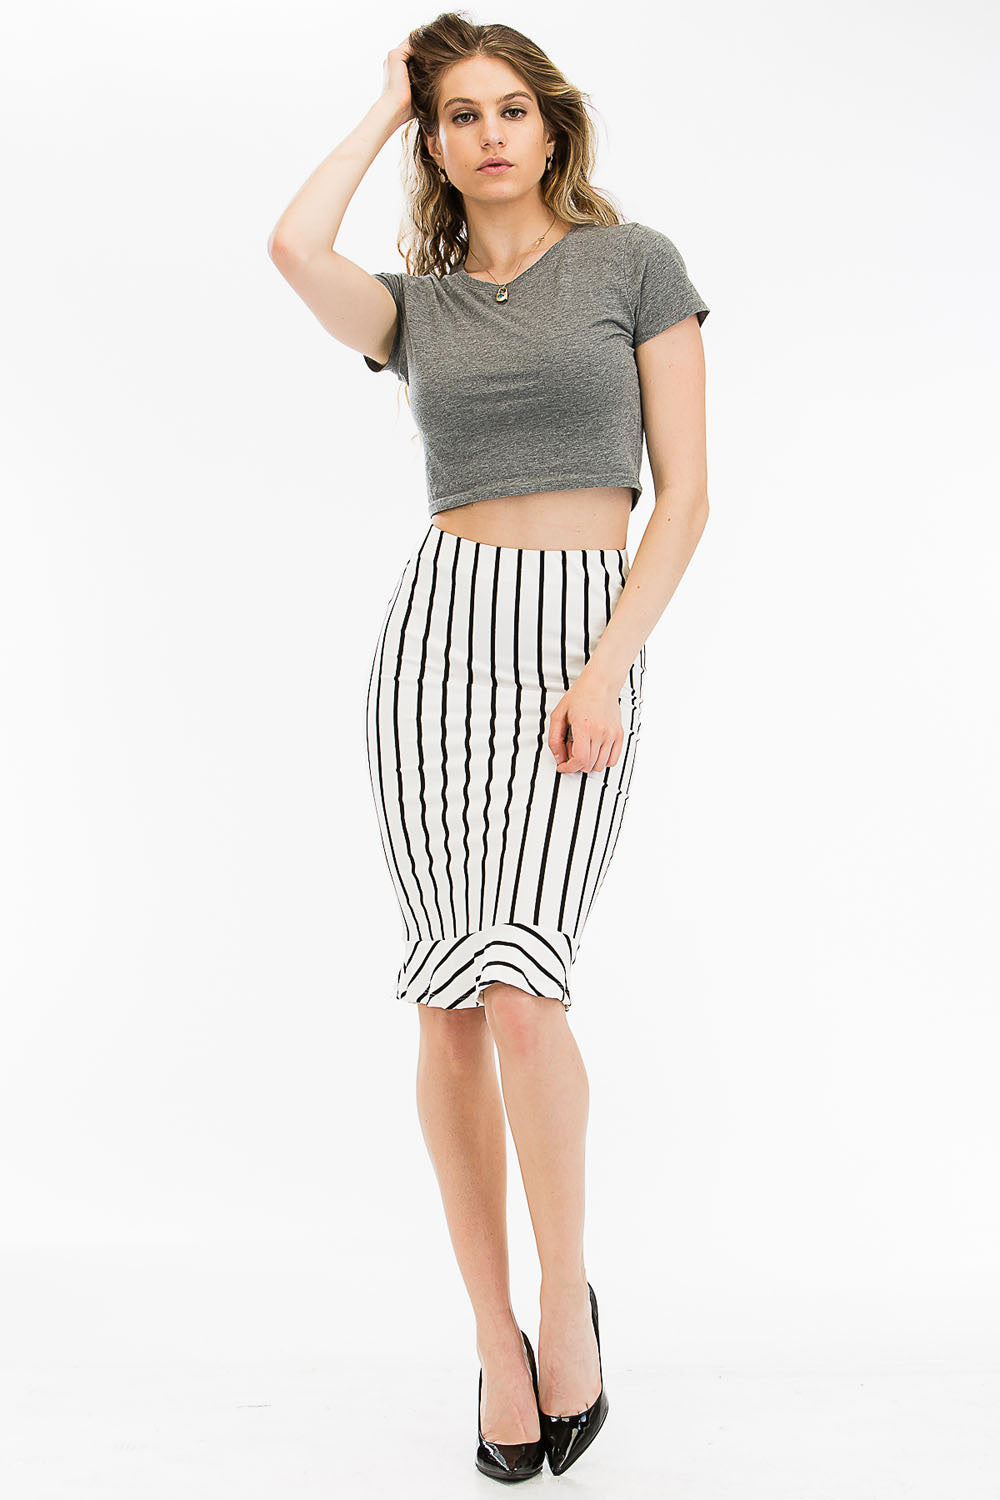 Skirt - BS2239 - Capella Apparel